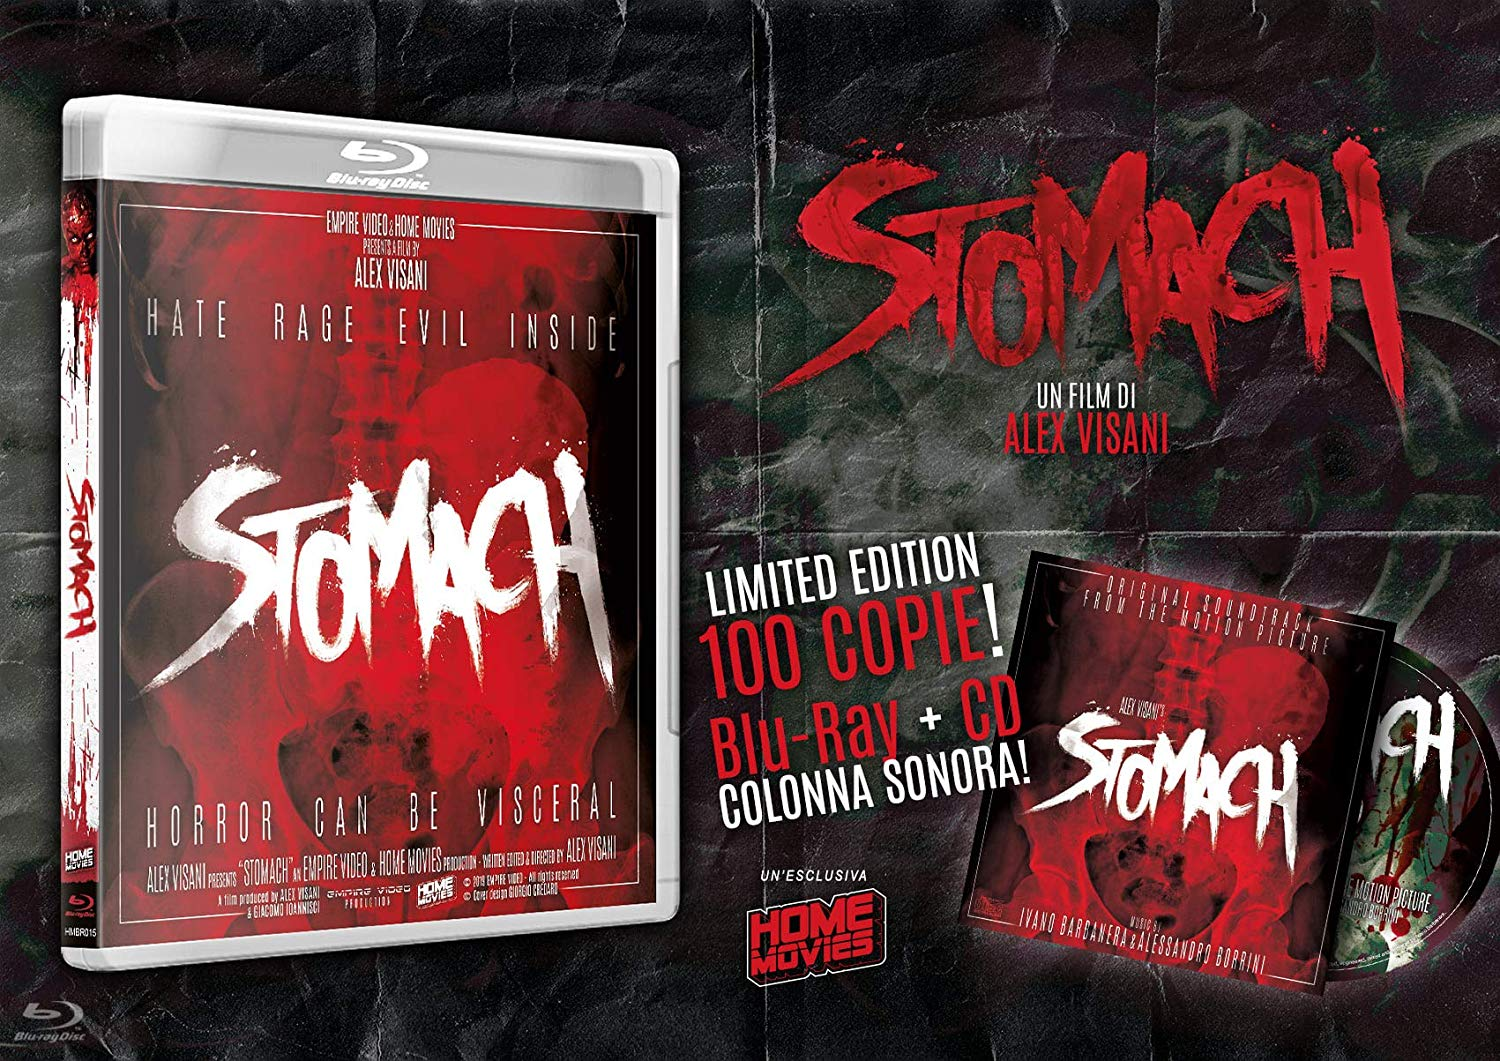 COF.STOMACH - LIMITED EDITION COVER B 100CP + CD SOUNDTRACK